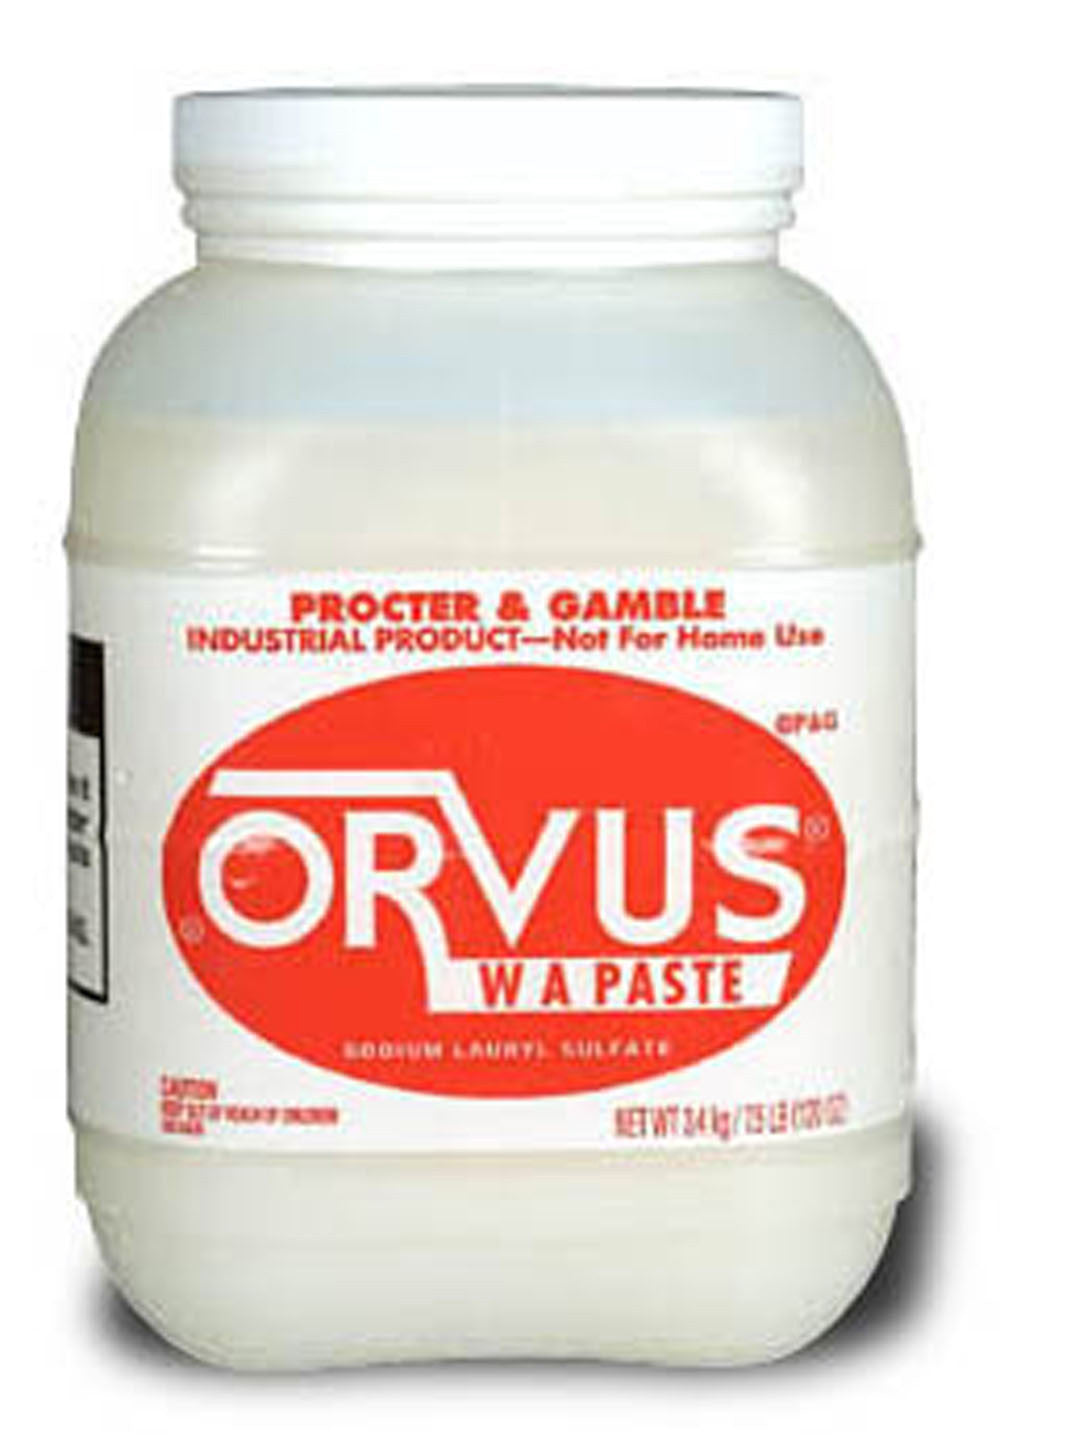 Orvus W A Paste Surfactant Cleaner